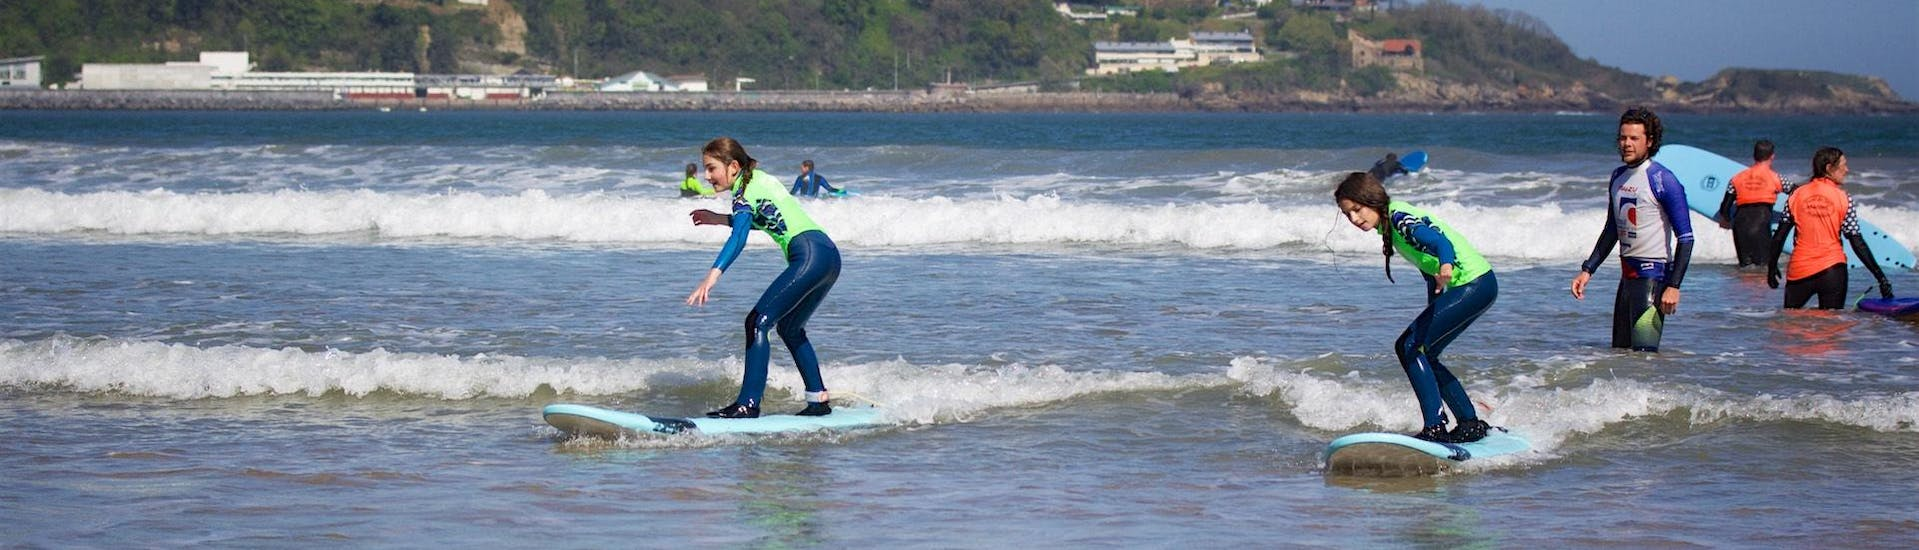 Weekend Surfing Lessons - Incl. Transfer to Hendaye